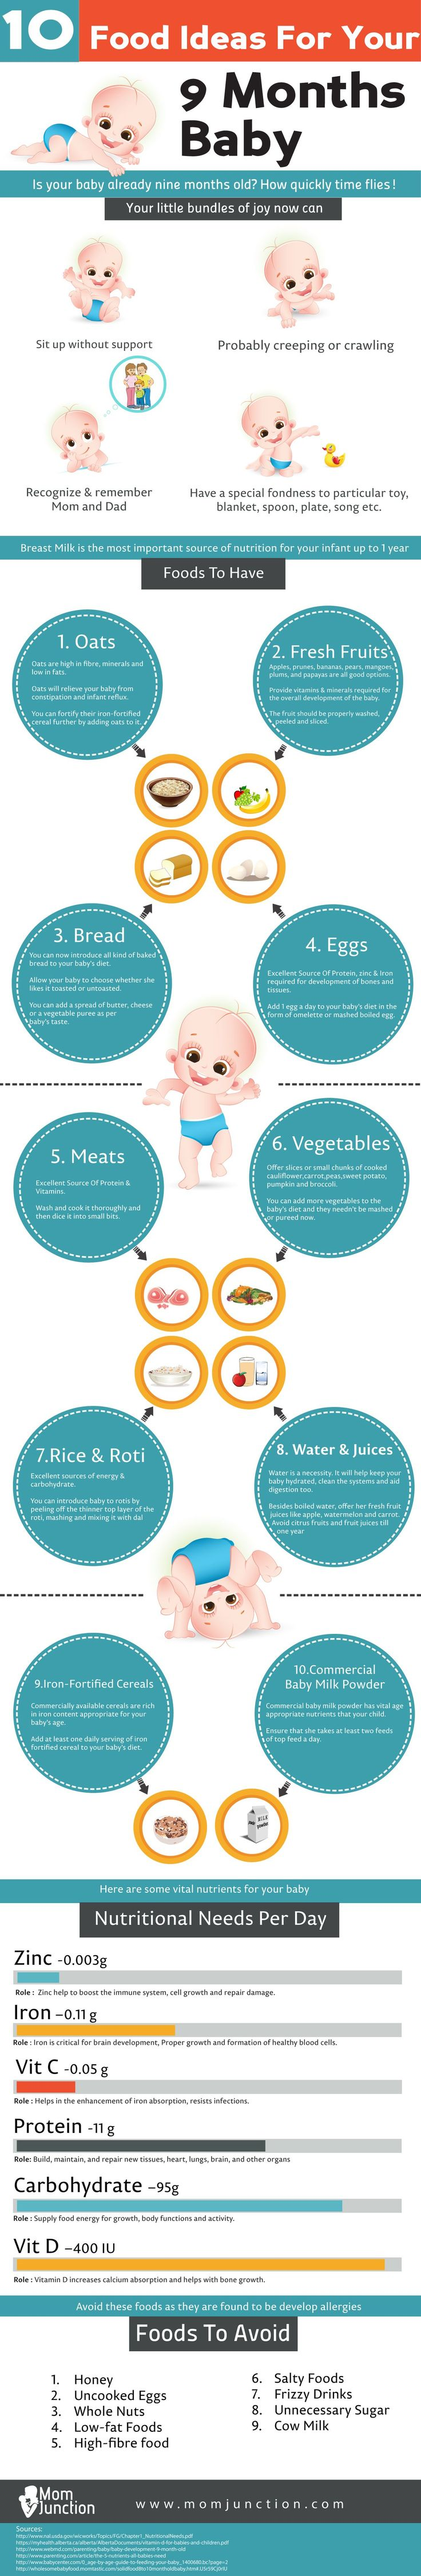 Is your baby 9 months old? Now it is time to get creative with your baby food. There are no fast rules here. Learn how to experiment with 9 month baby food.